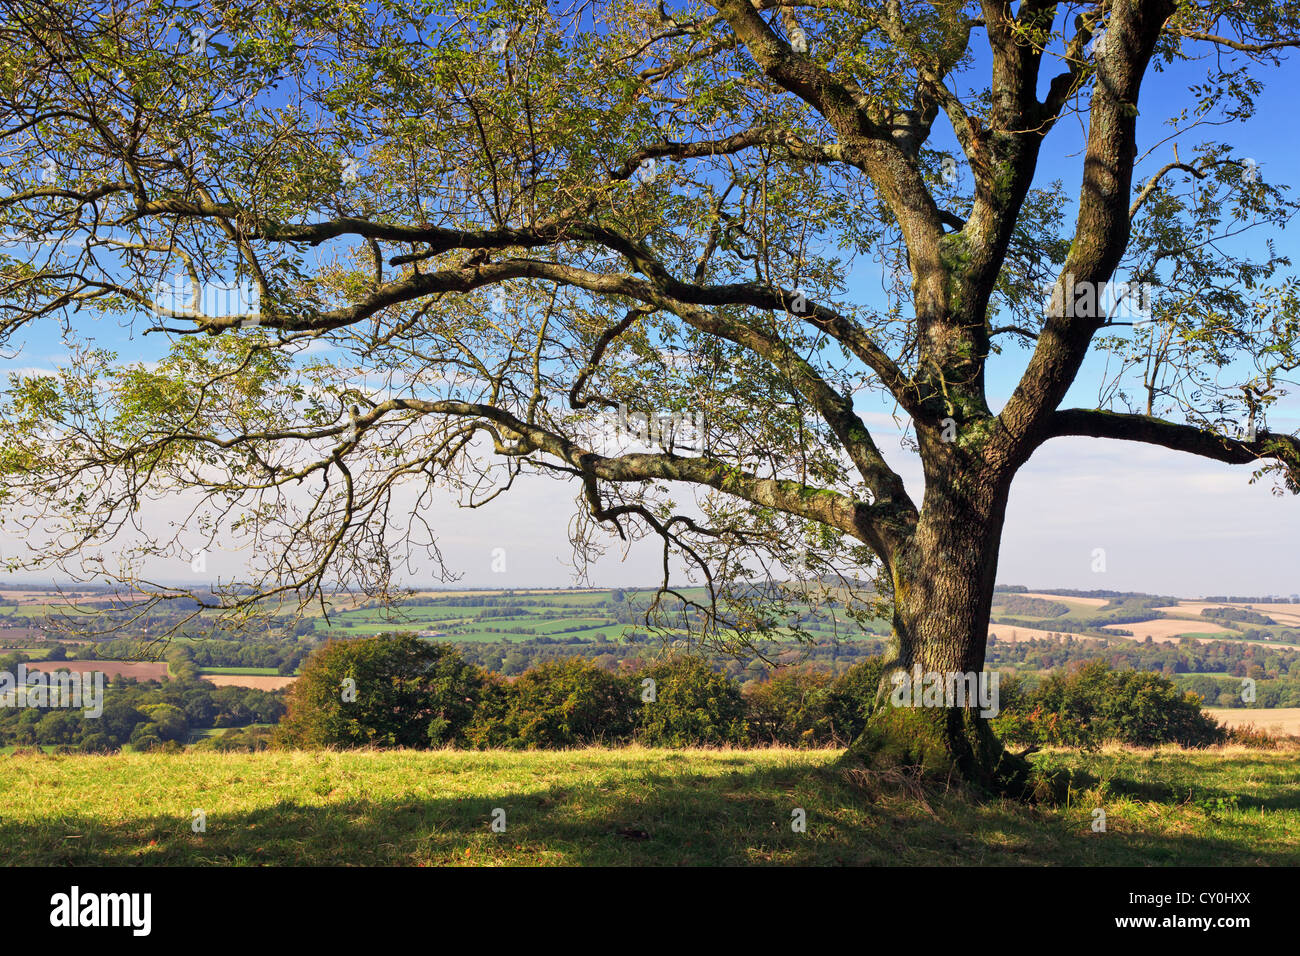 An Ash tree on Old Winchester Hill in Hampshire England with views across the rolling countryside of Meon valley - Stock Image